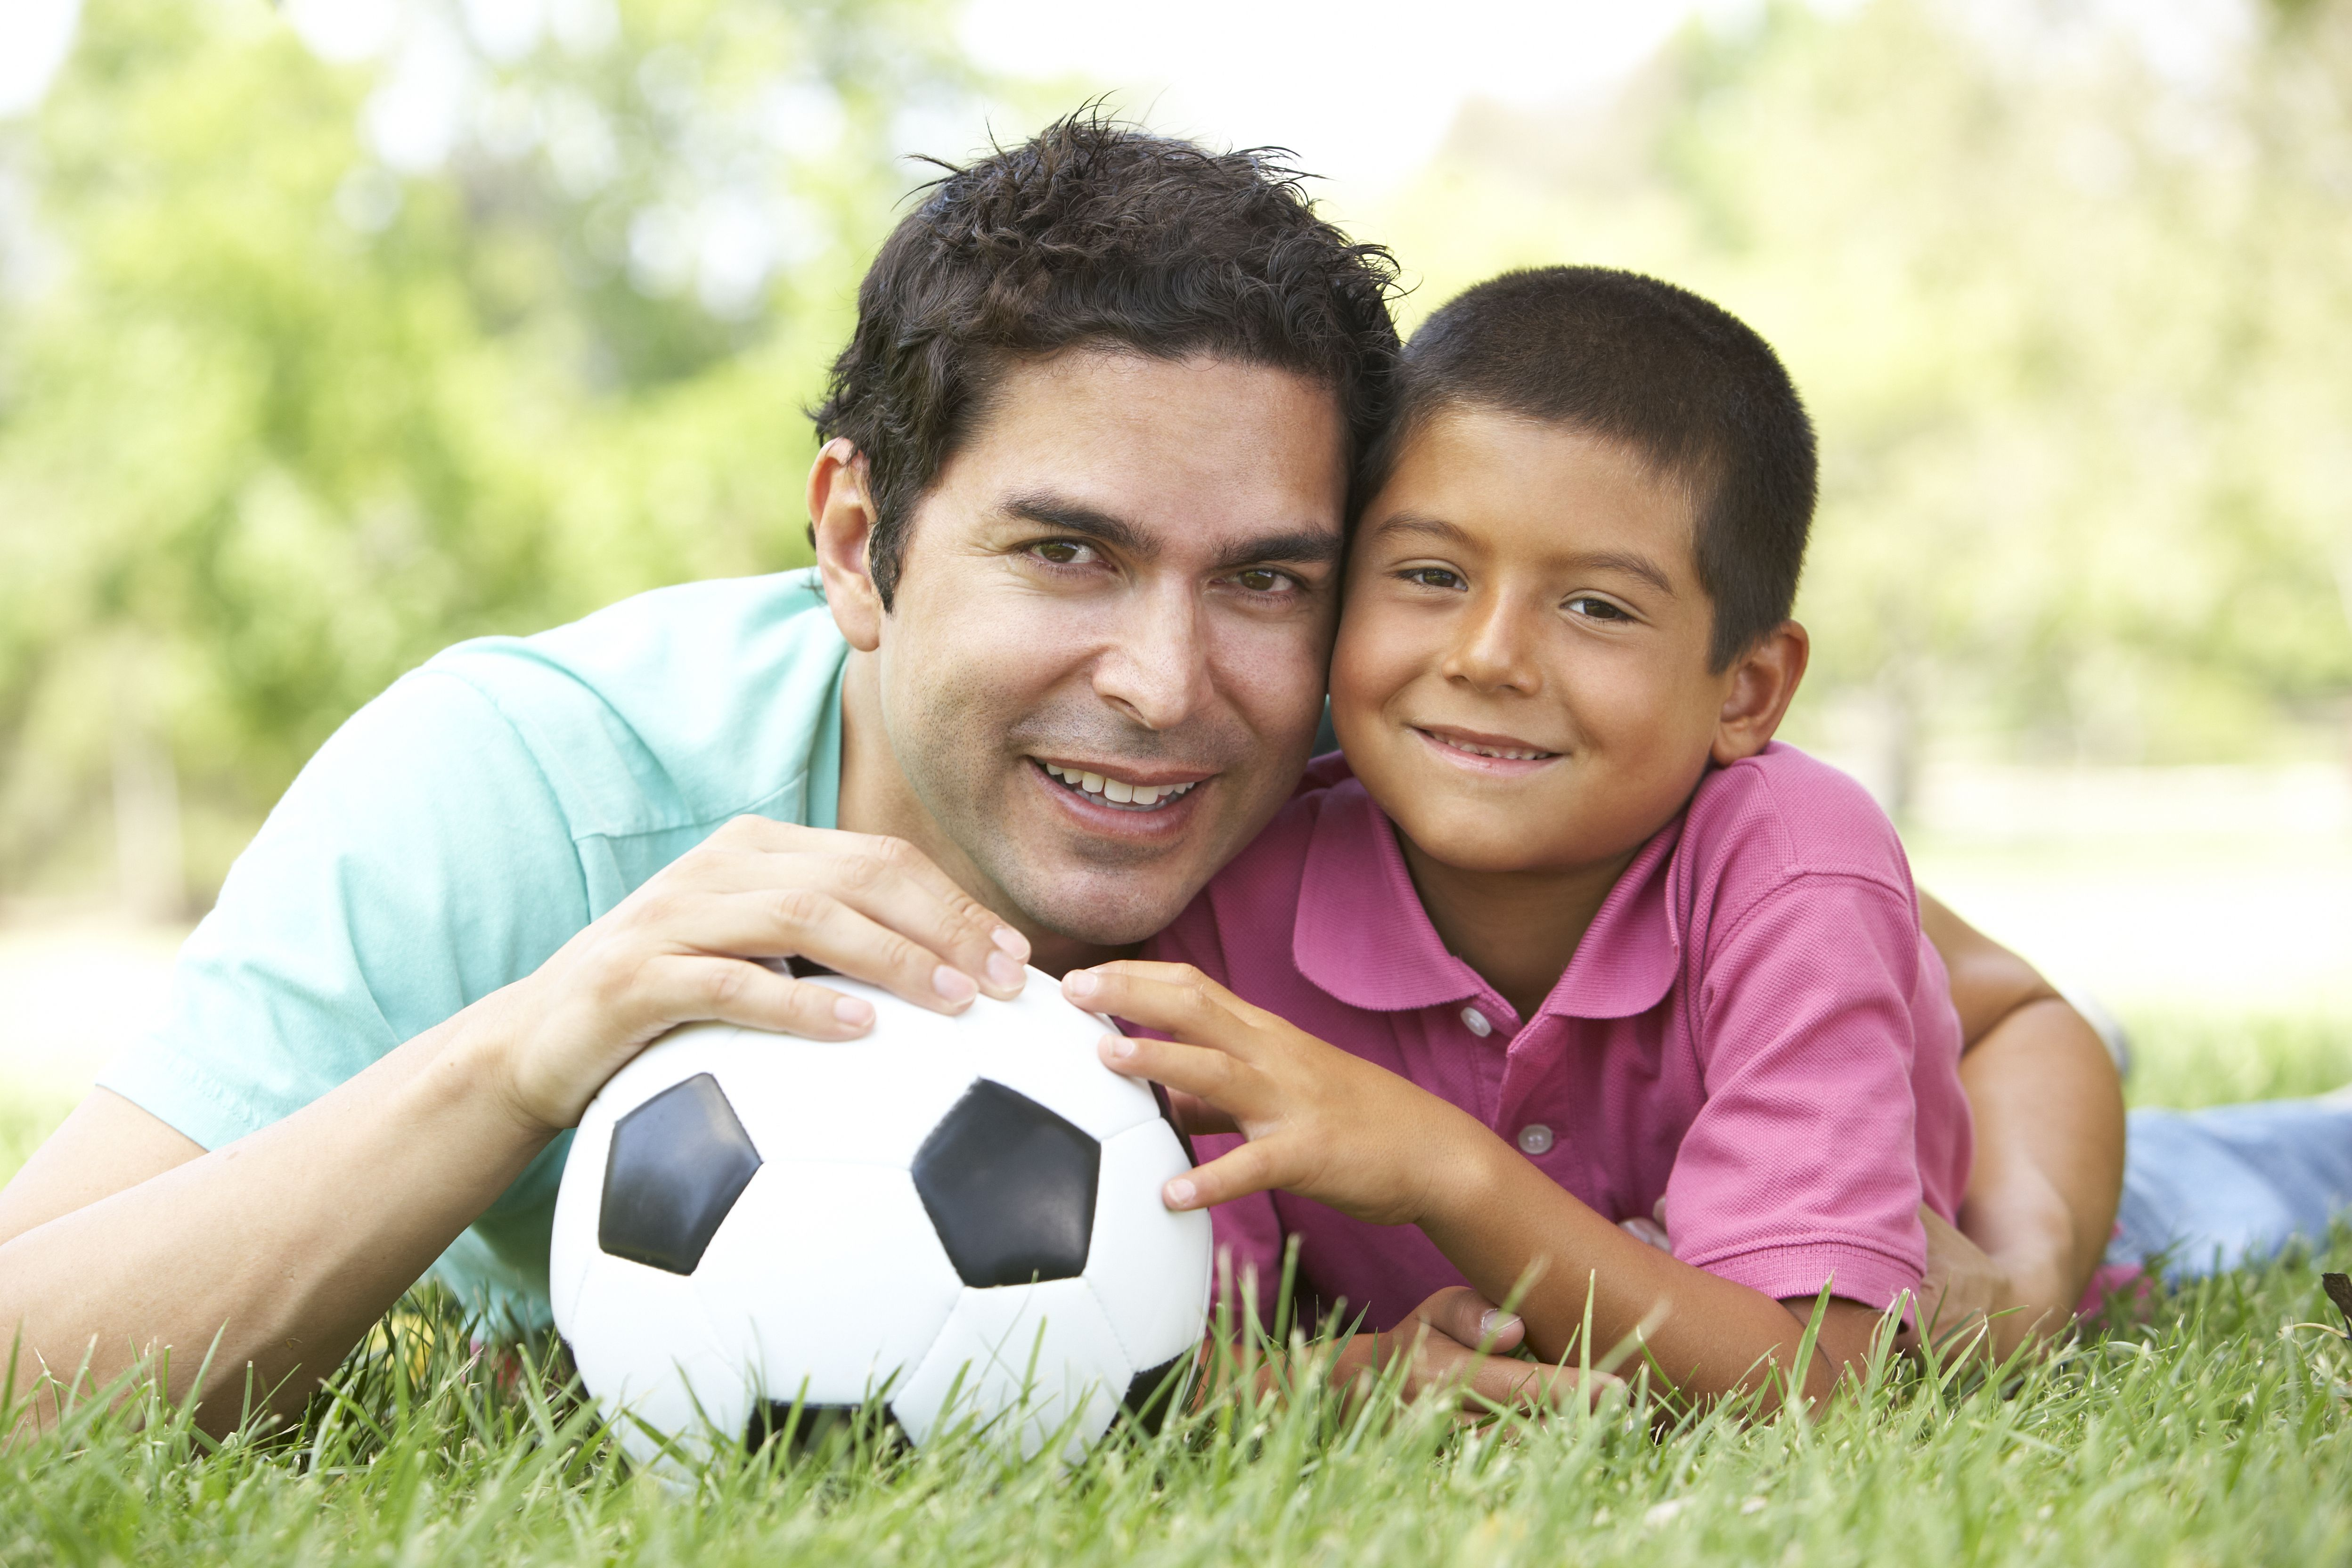 How do you play divorce lawyers benefits of sports